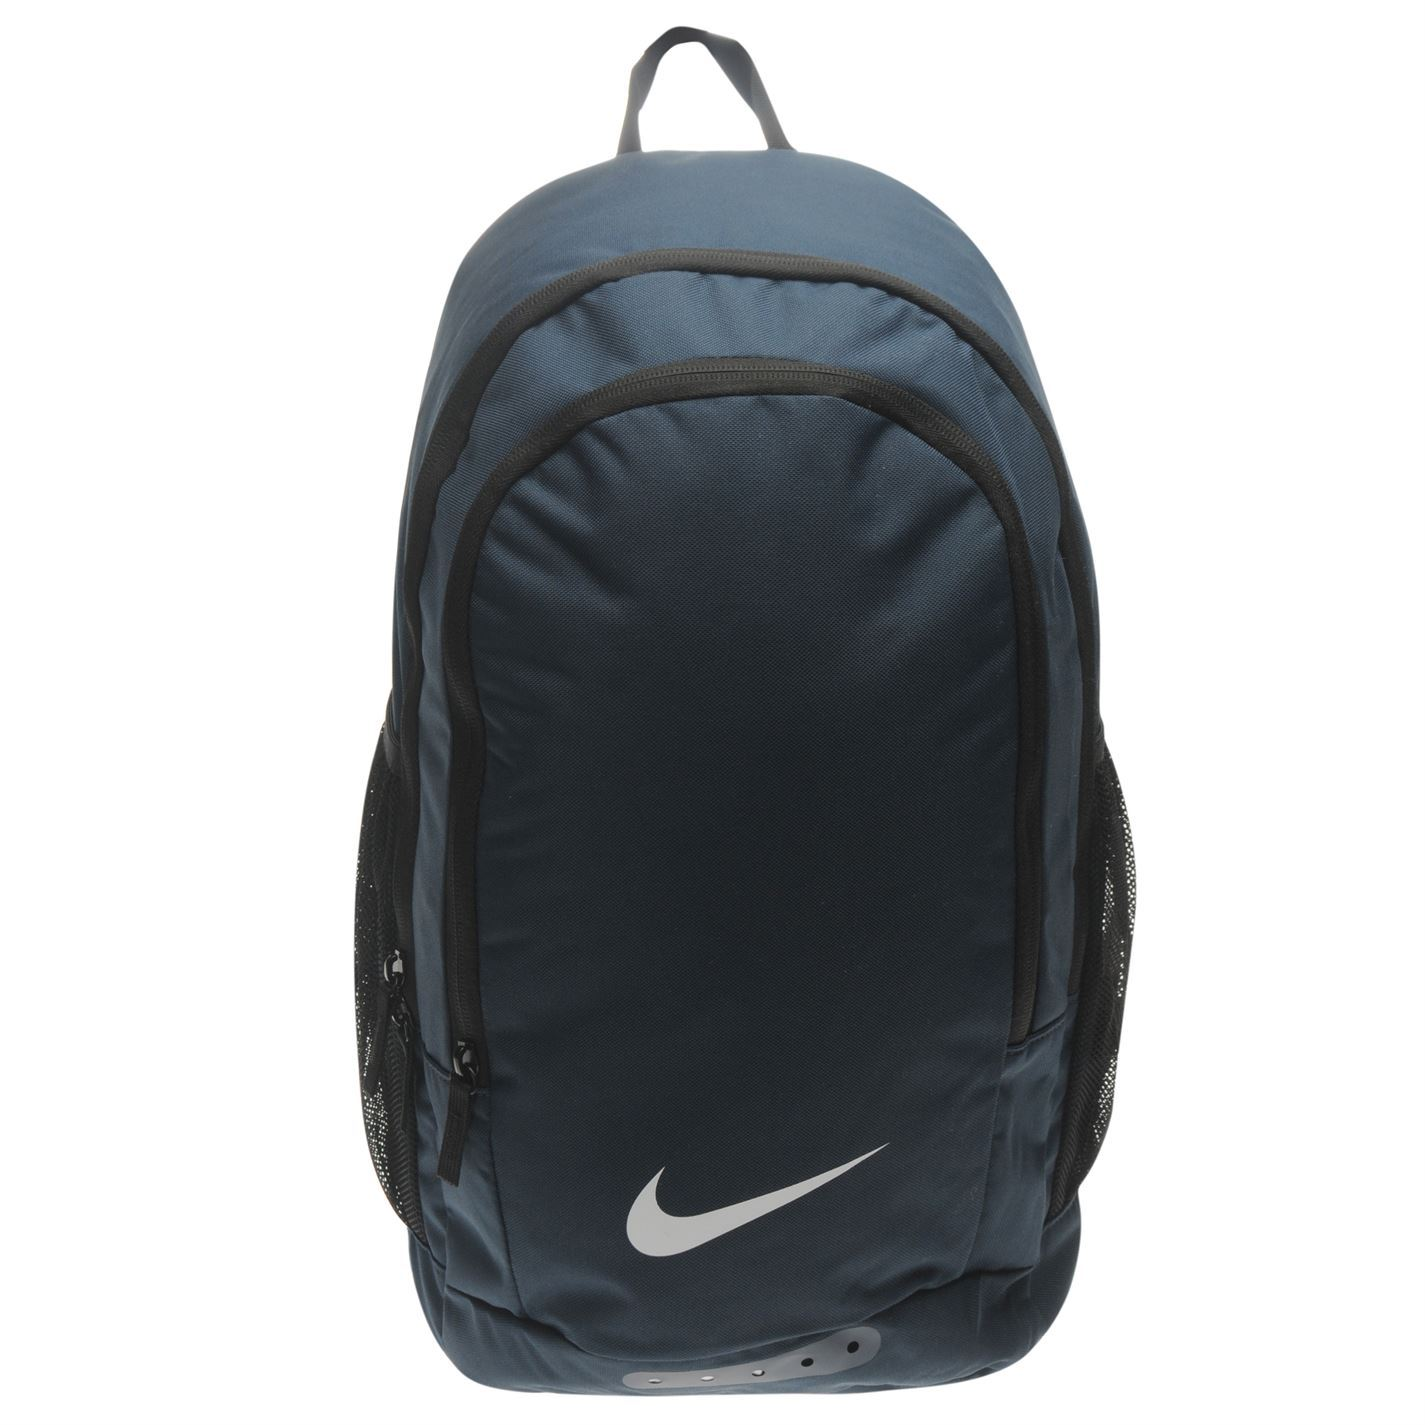 a3ccdd0bc Nike Academy Backpack Navy Sports Gym Bag Rucksack Carryall | eBay